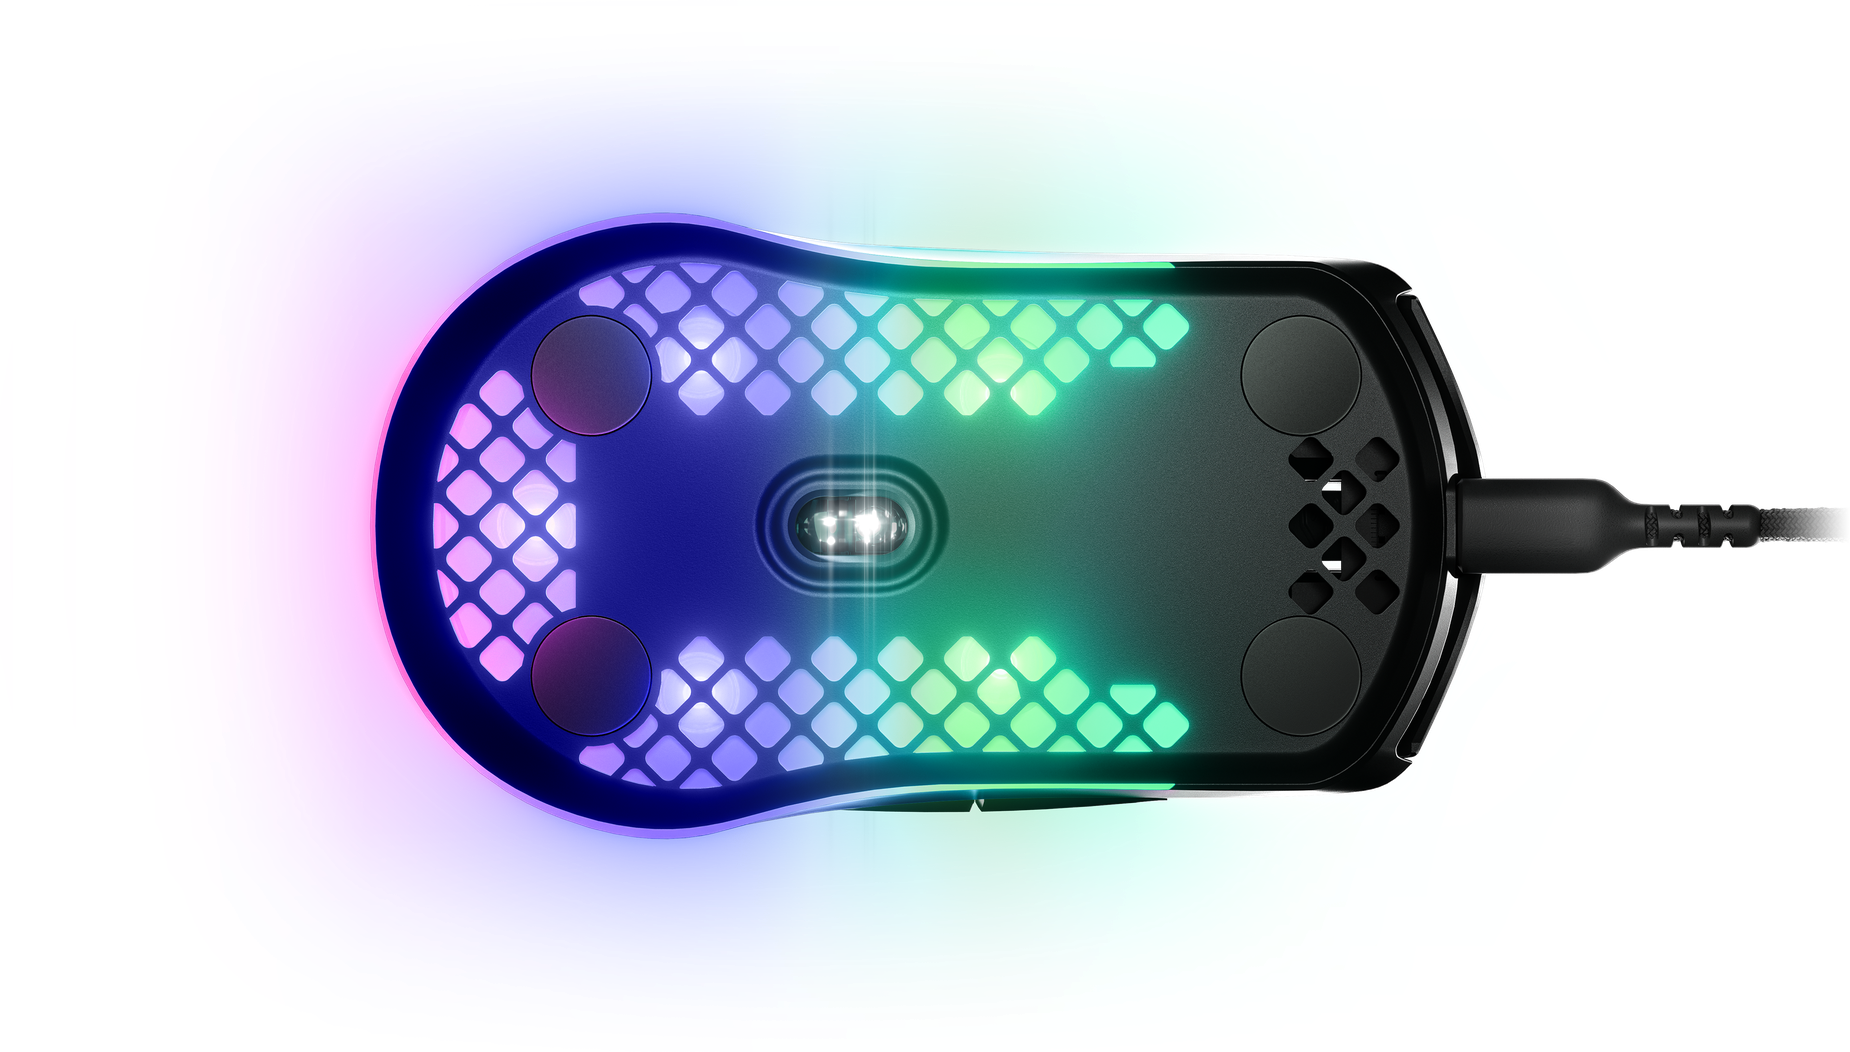 Aerox mouse viewed from the bottom to show the glide skates and sensors